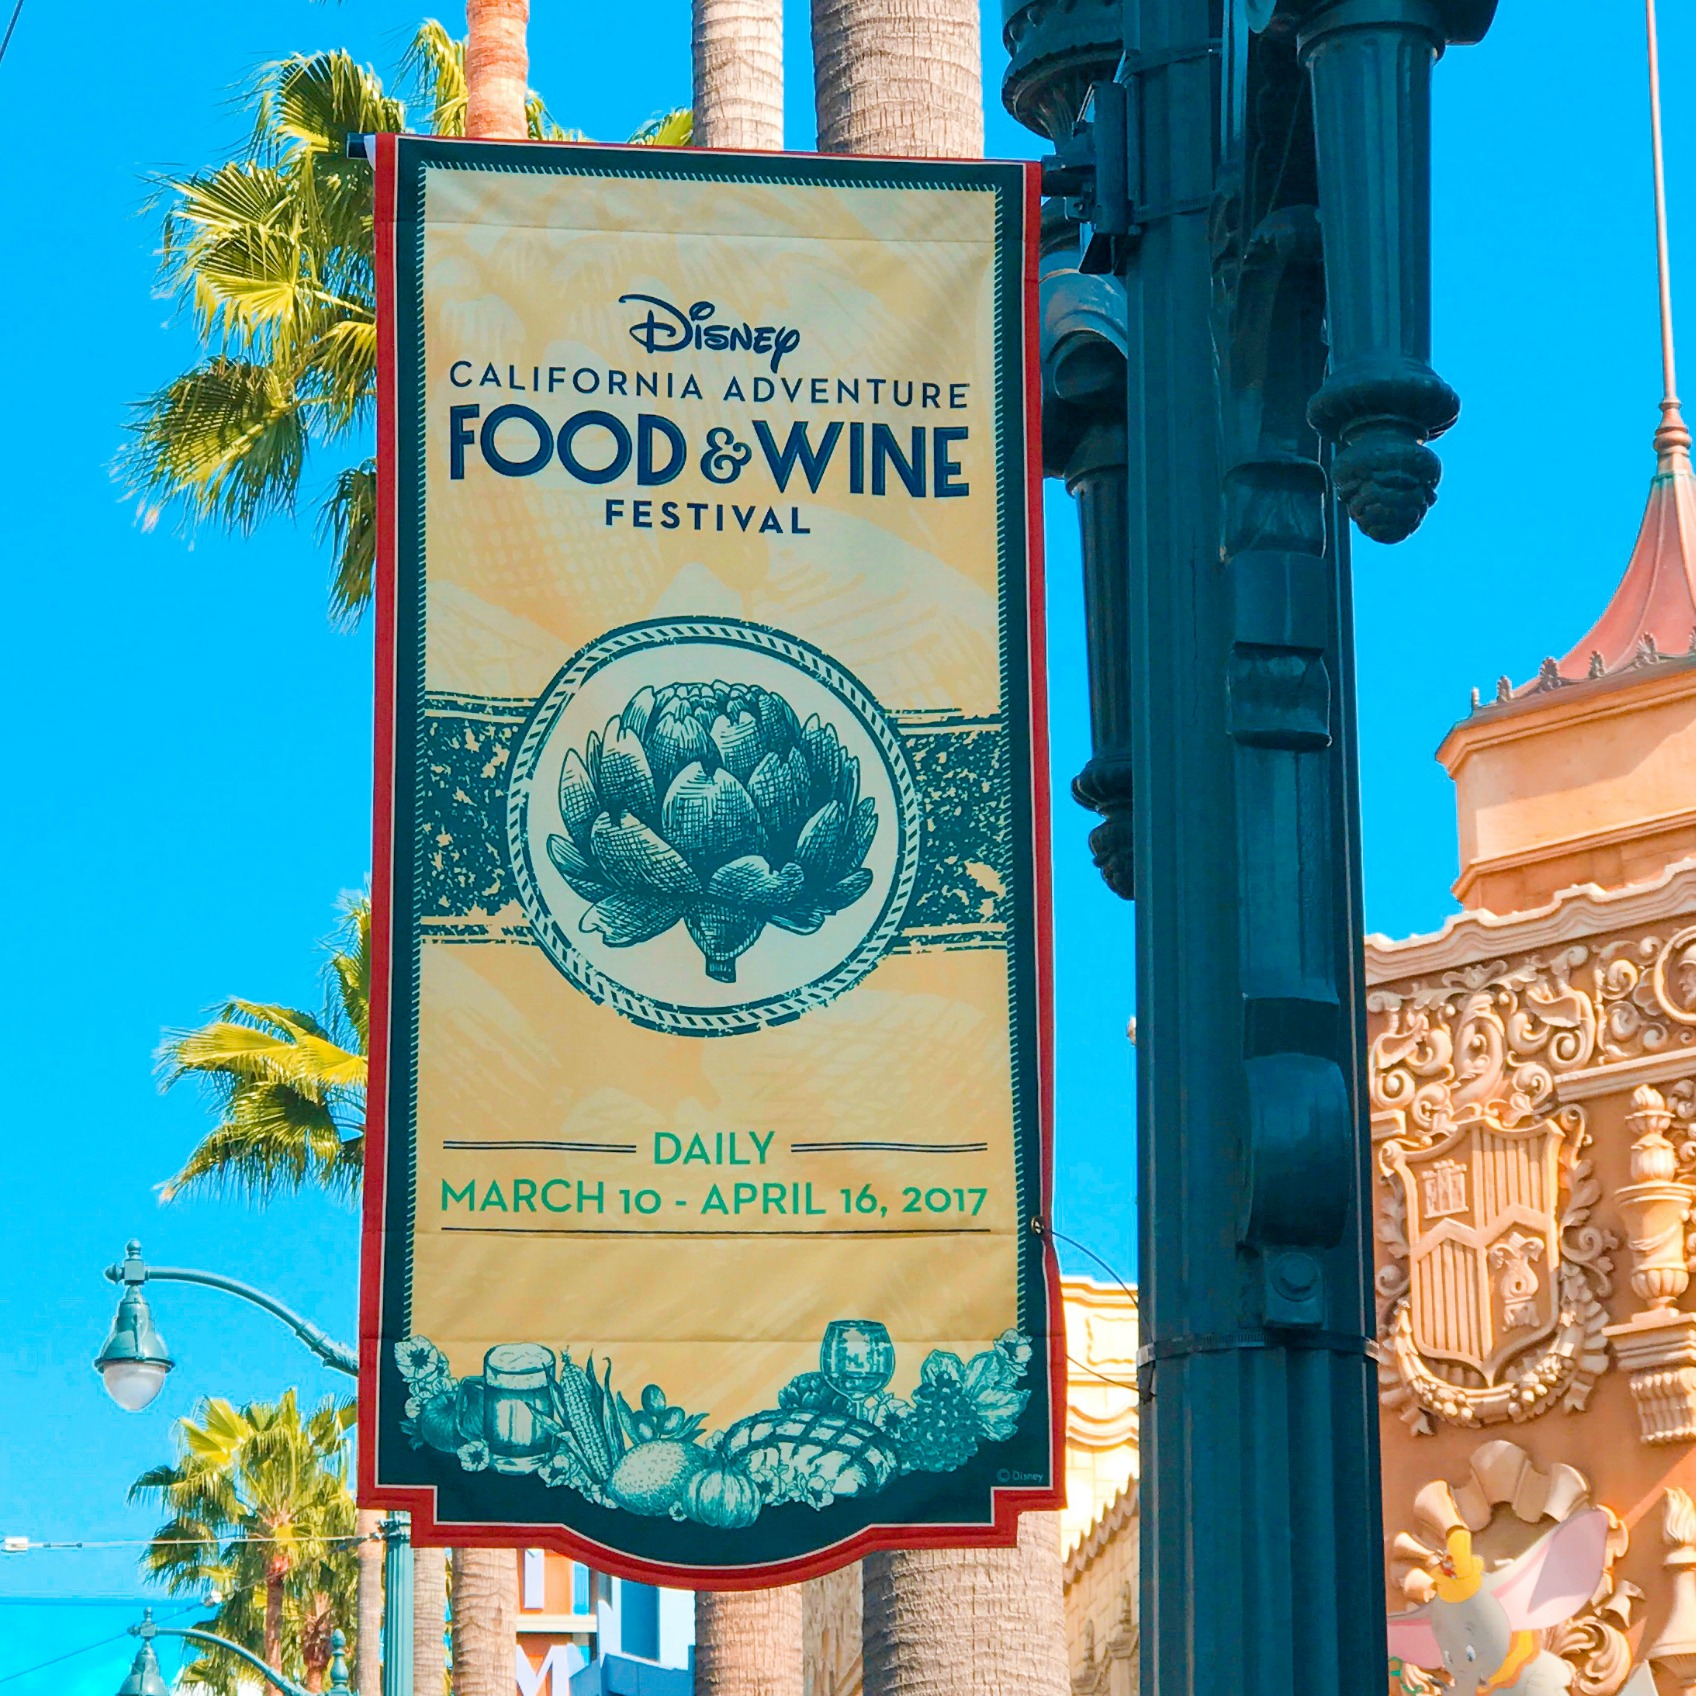 10 Reasons To Go To The Disney California Adventure Food